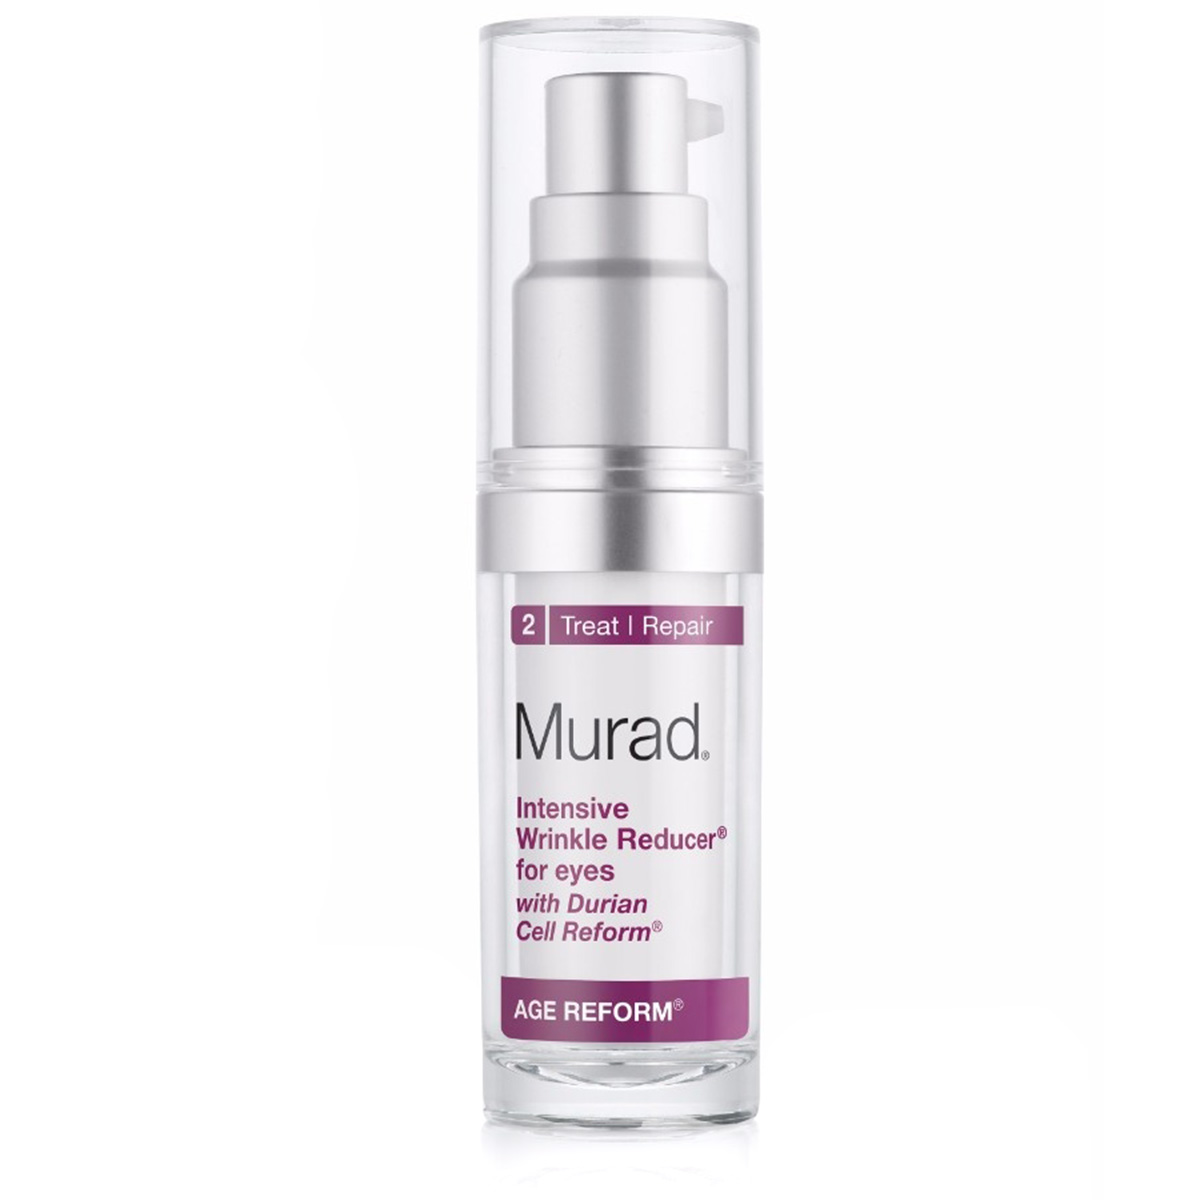 Murad Age Reform Intensive Wrinkle Reducer for Eyes - 15 ml